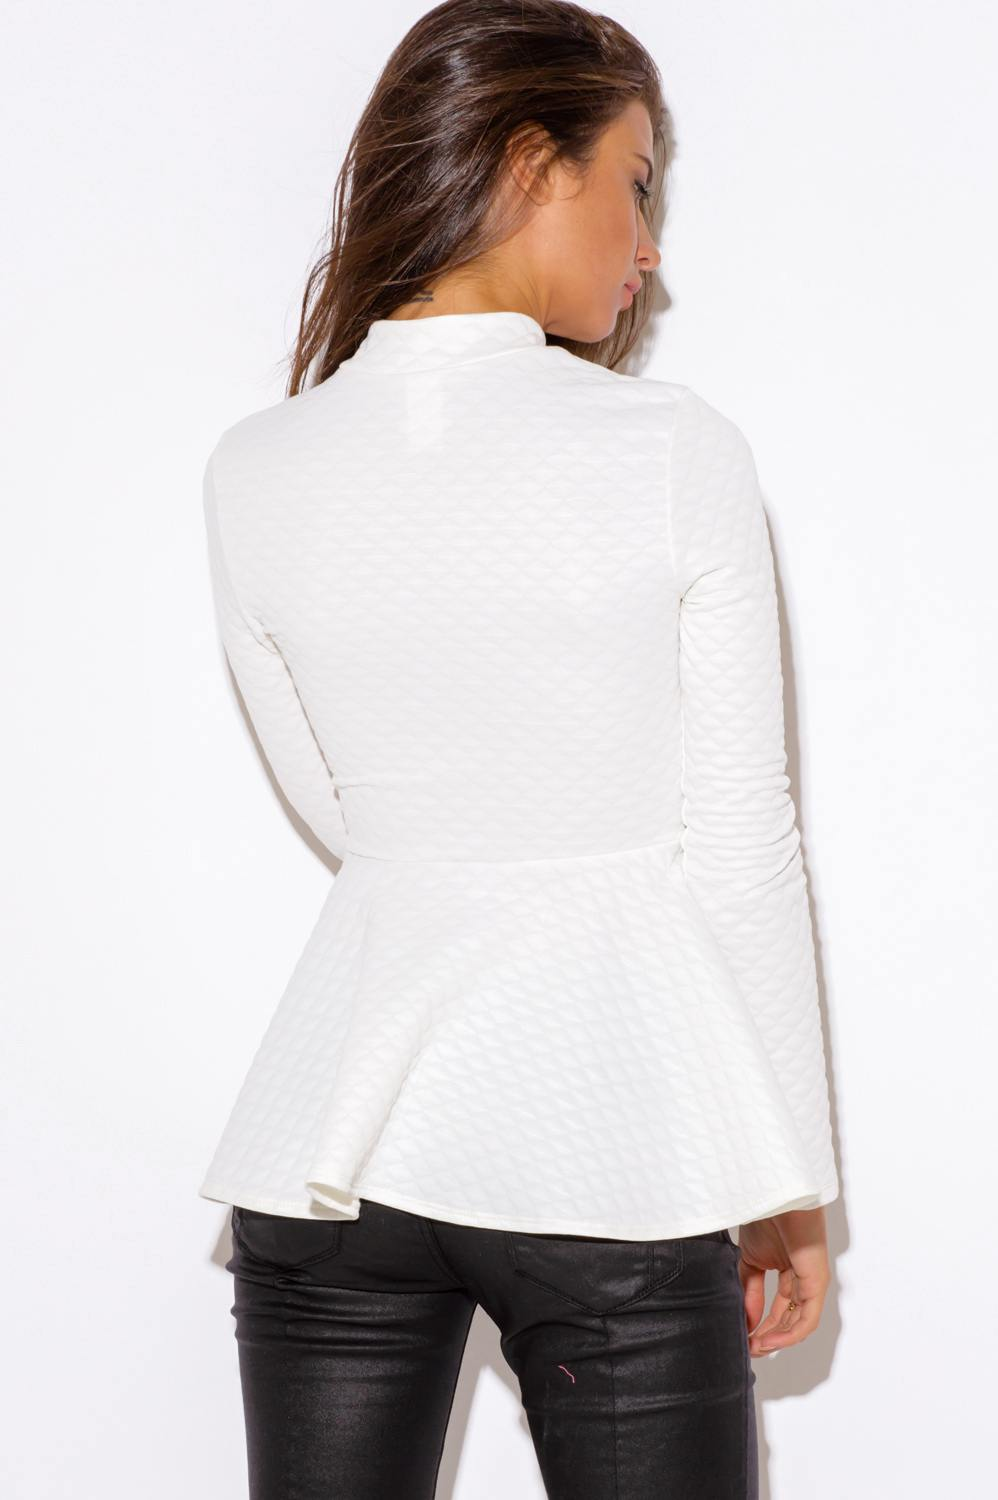 BCBGMAXAZRIA Off White Shasha Peplum Blazer. $ $ at Belk. Bcbgmaxazria Shasha Peplum Blazer. This striking reimagining of the classic blazer silhouette is .